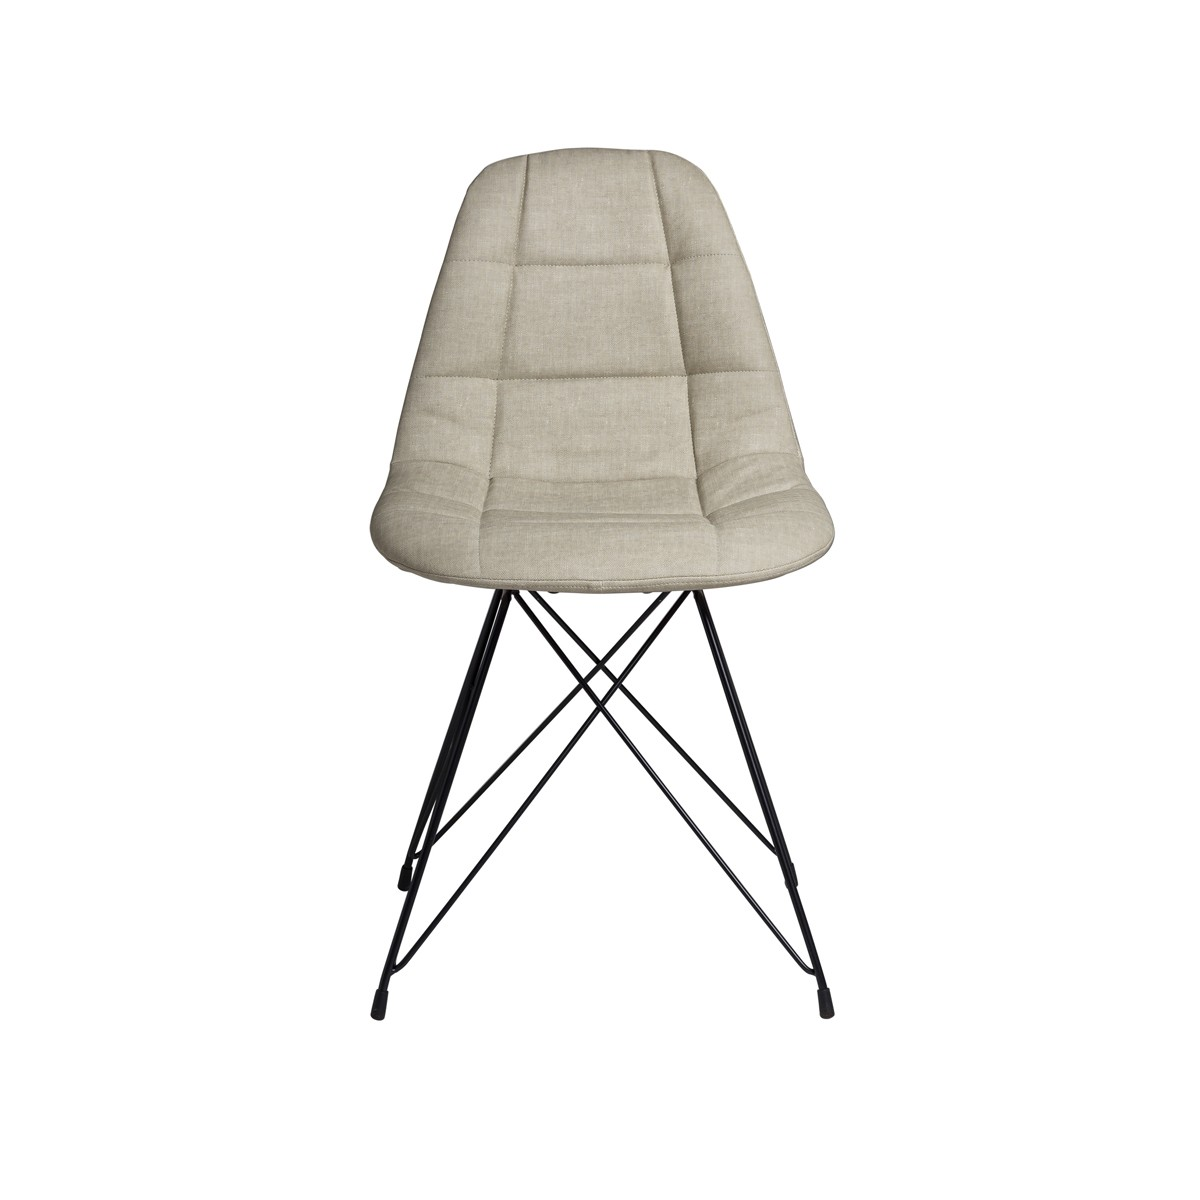 Zane  - Dining Chair Beige with Powder Coated Metal Legs